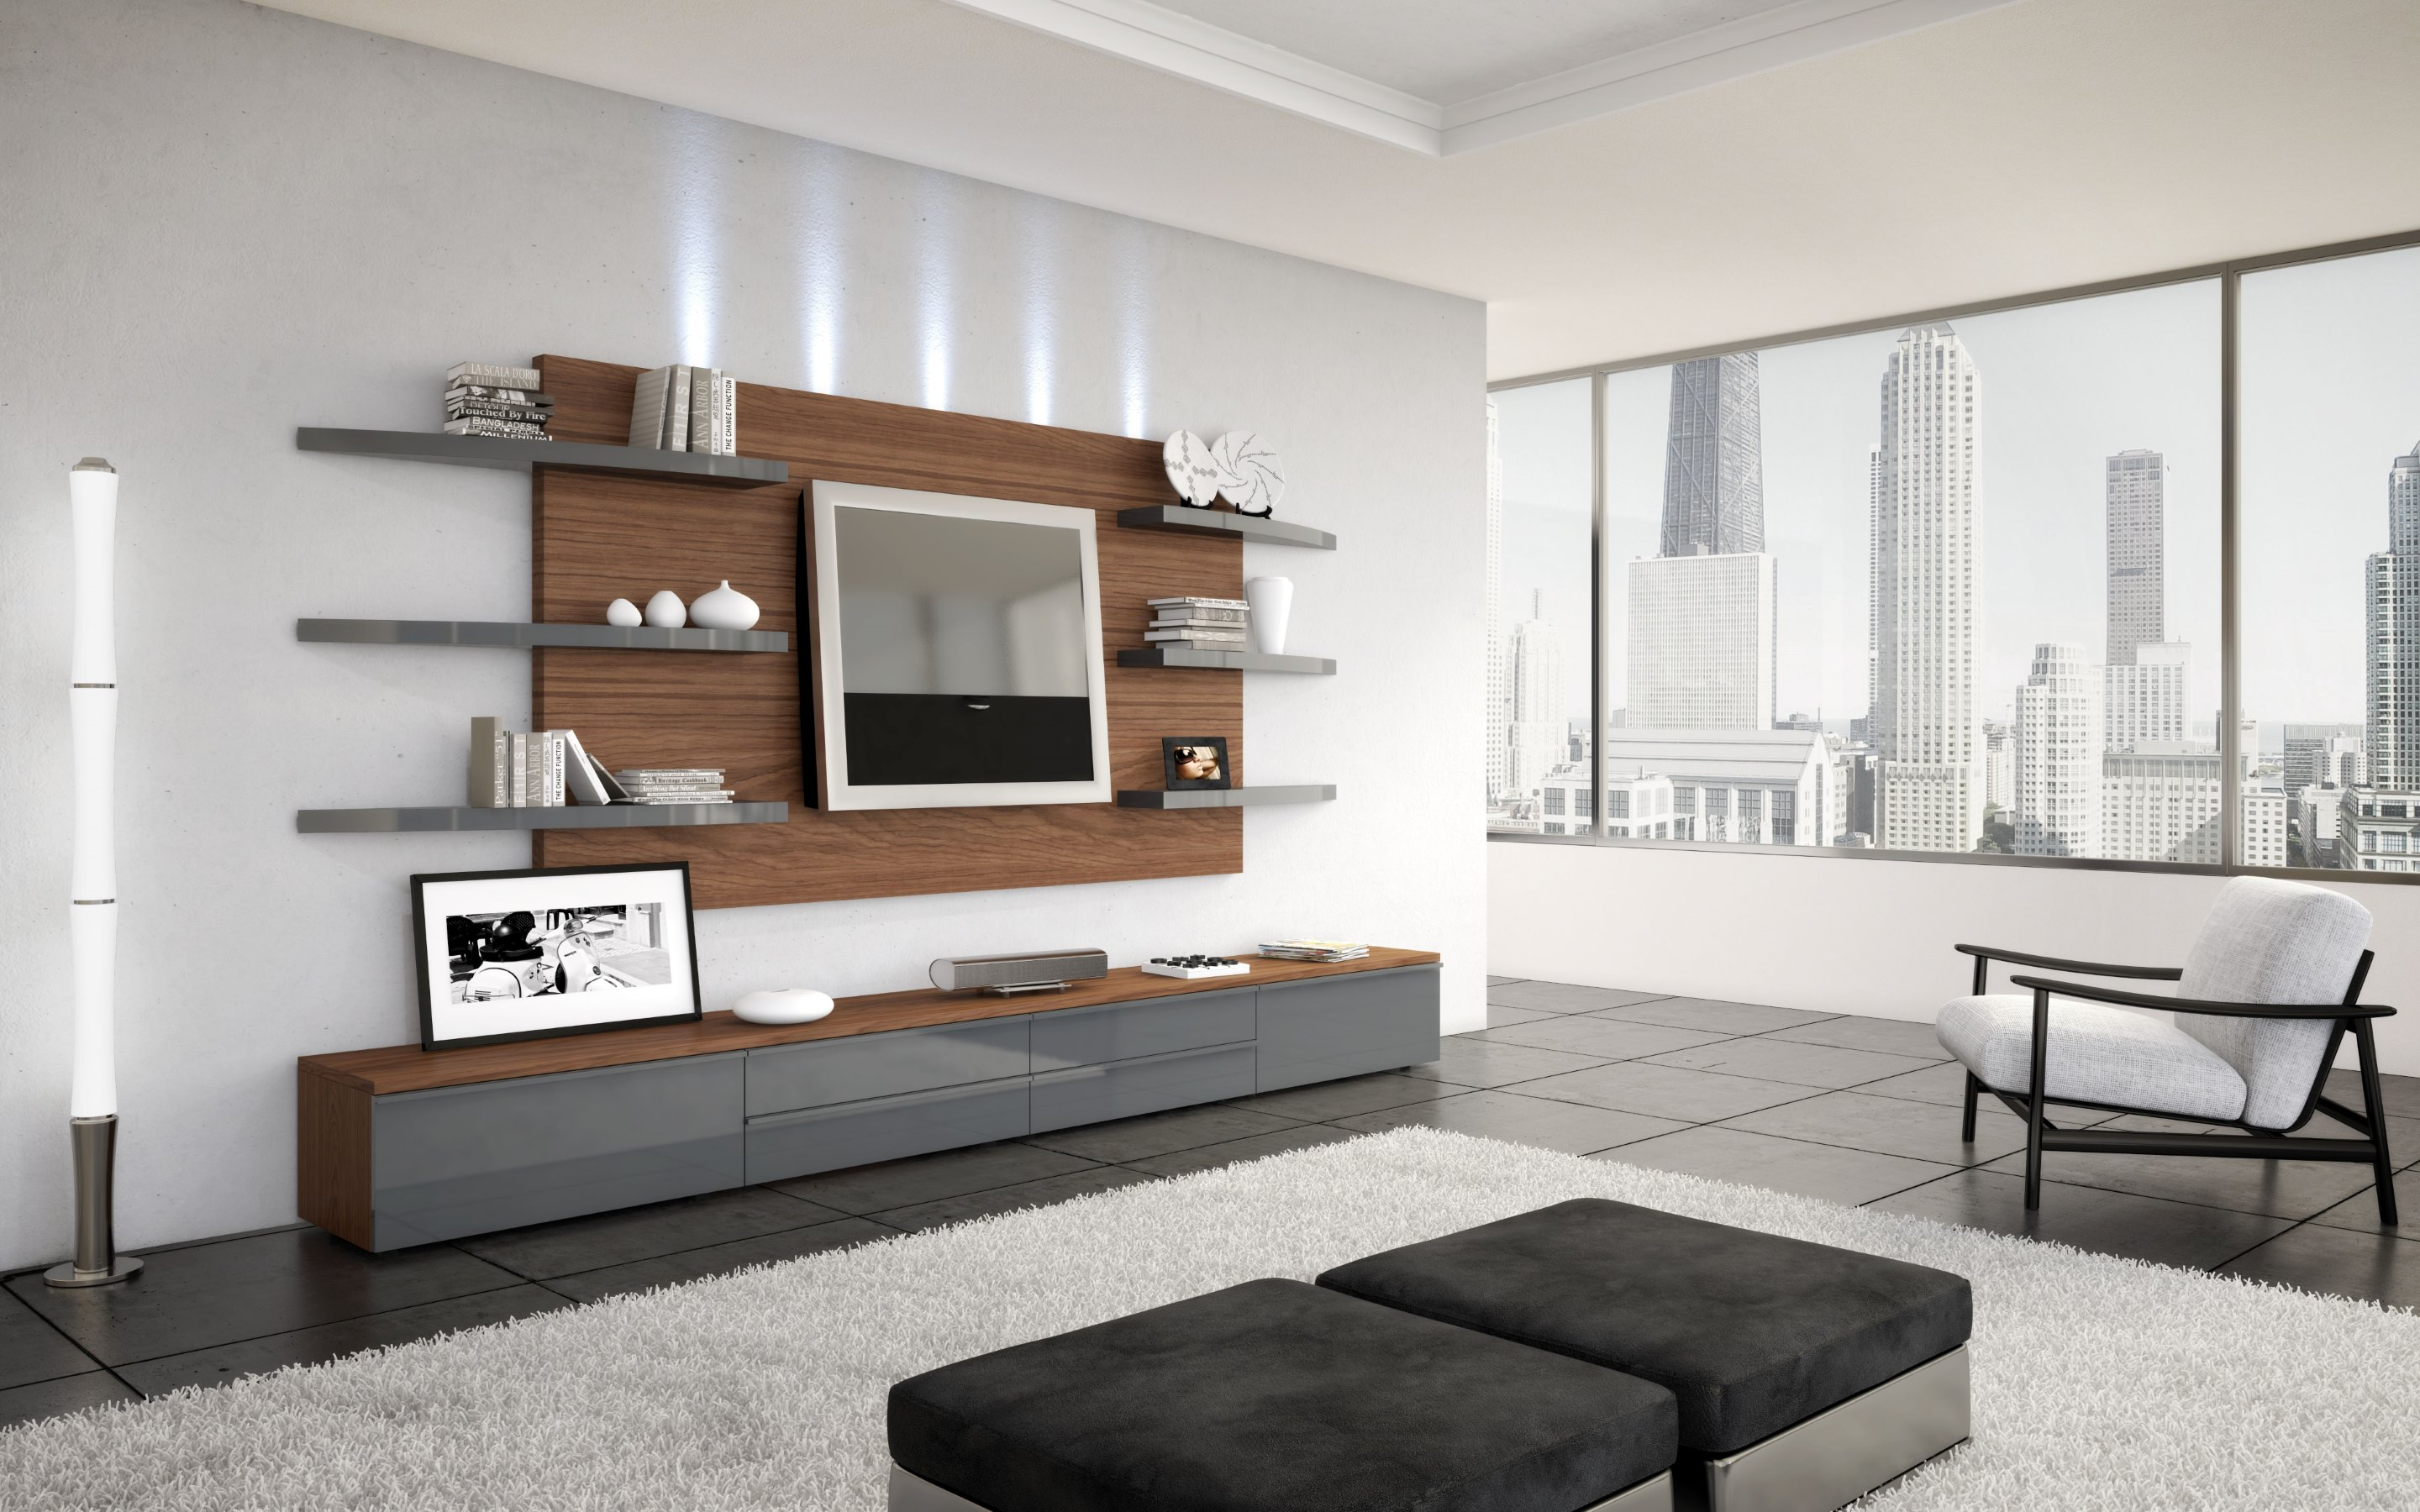 Living room images hd living room for Living room ideas wallpaper